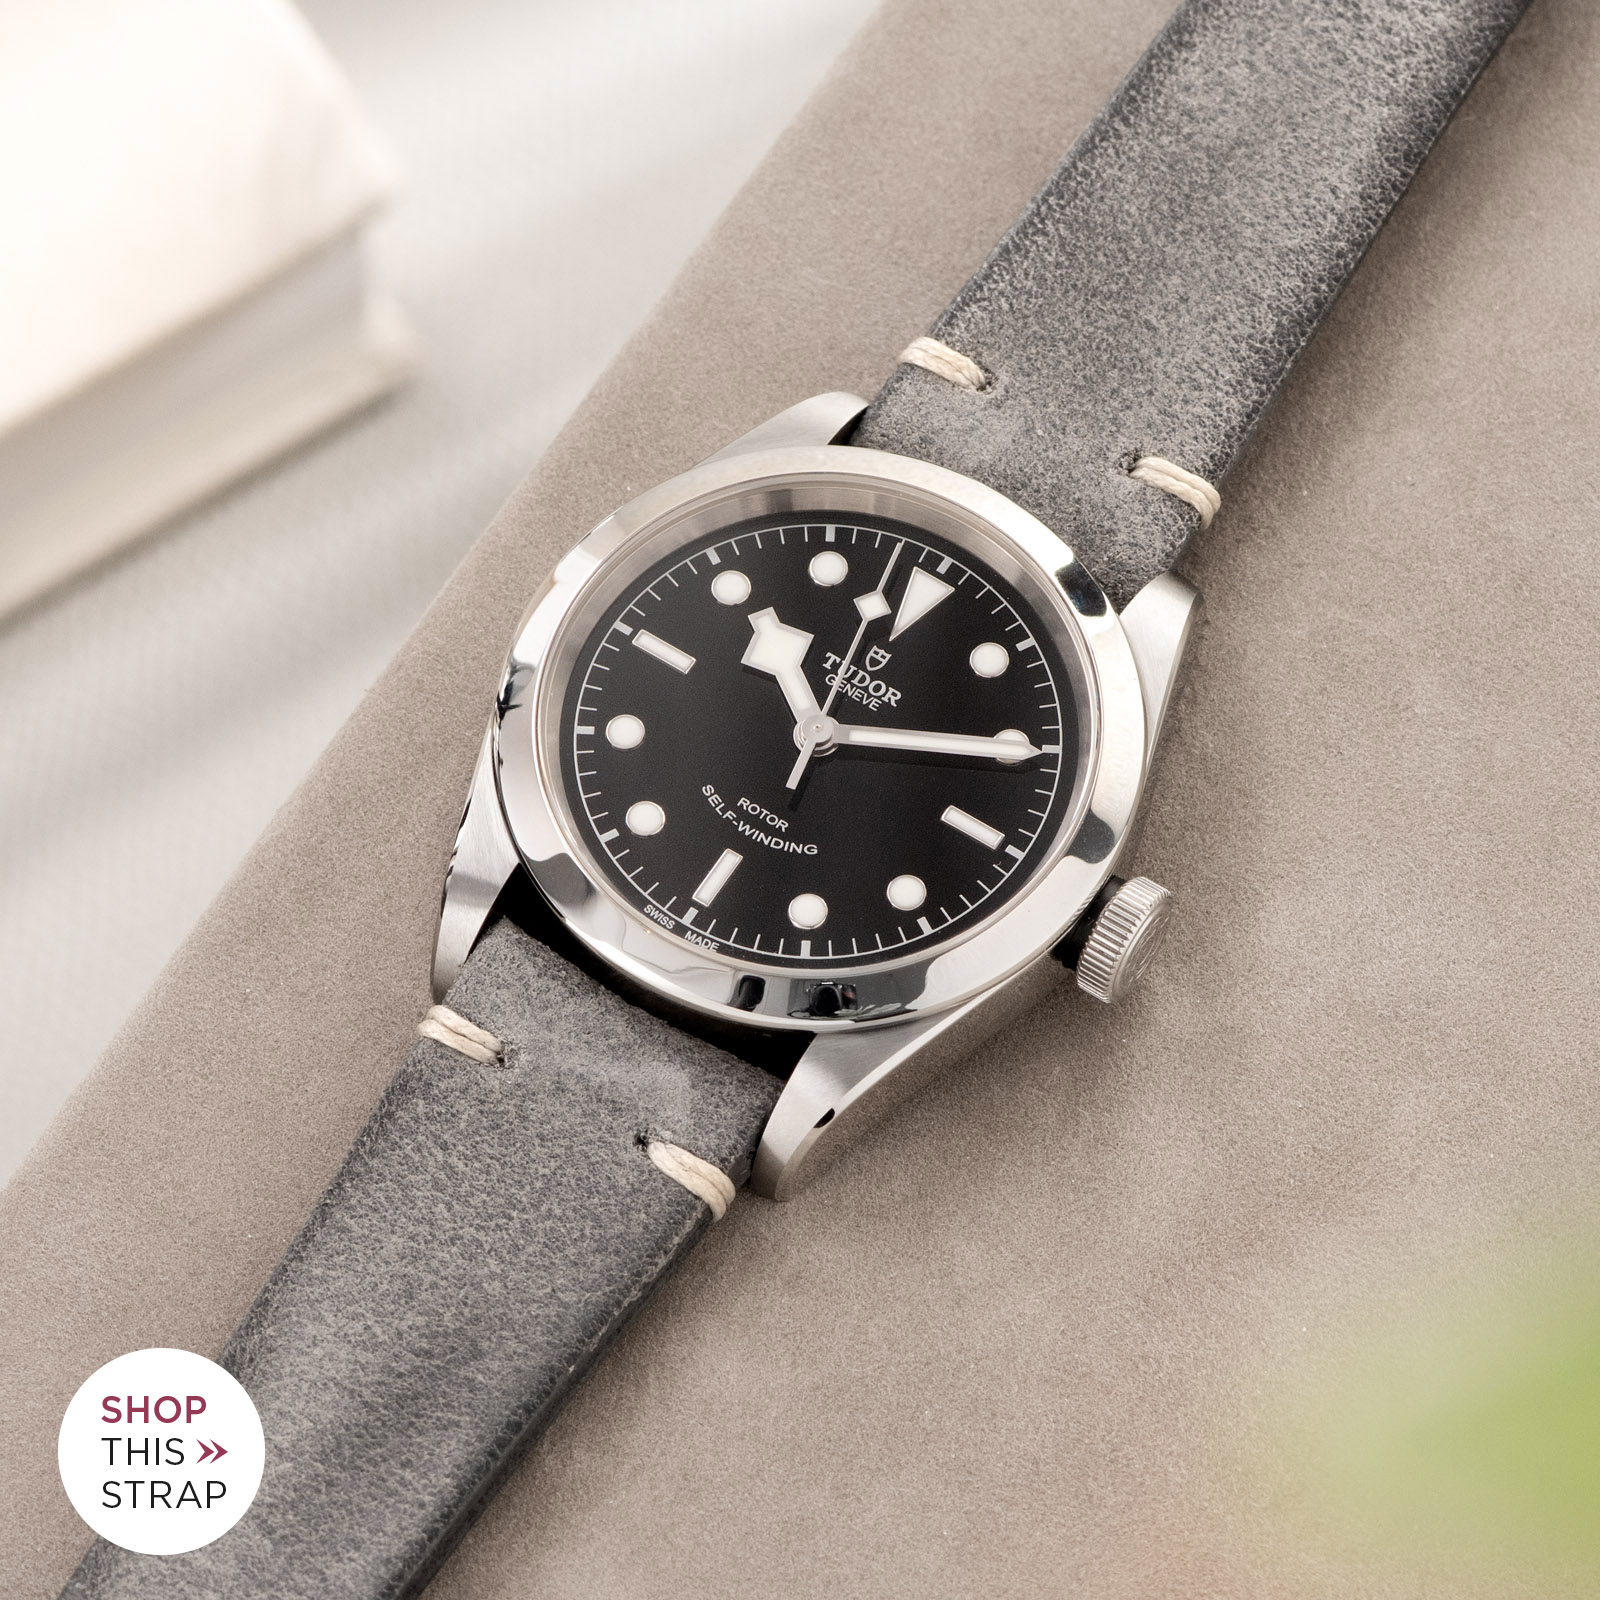 Bulang and Sons_Strap Guide_Tudor Heritage BlackBay 411_Rugged Grey Leather Watch Strap